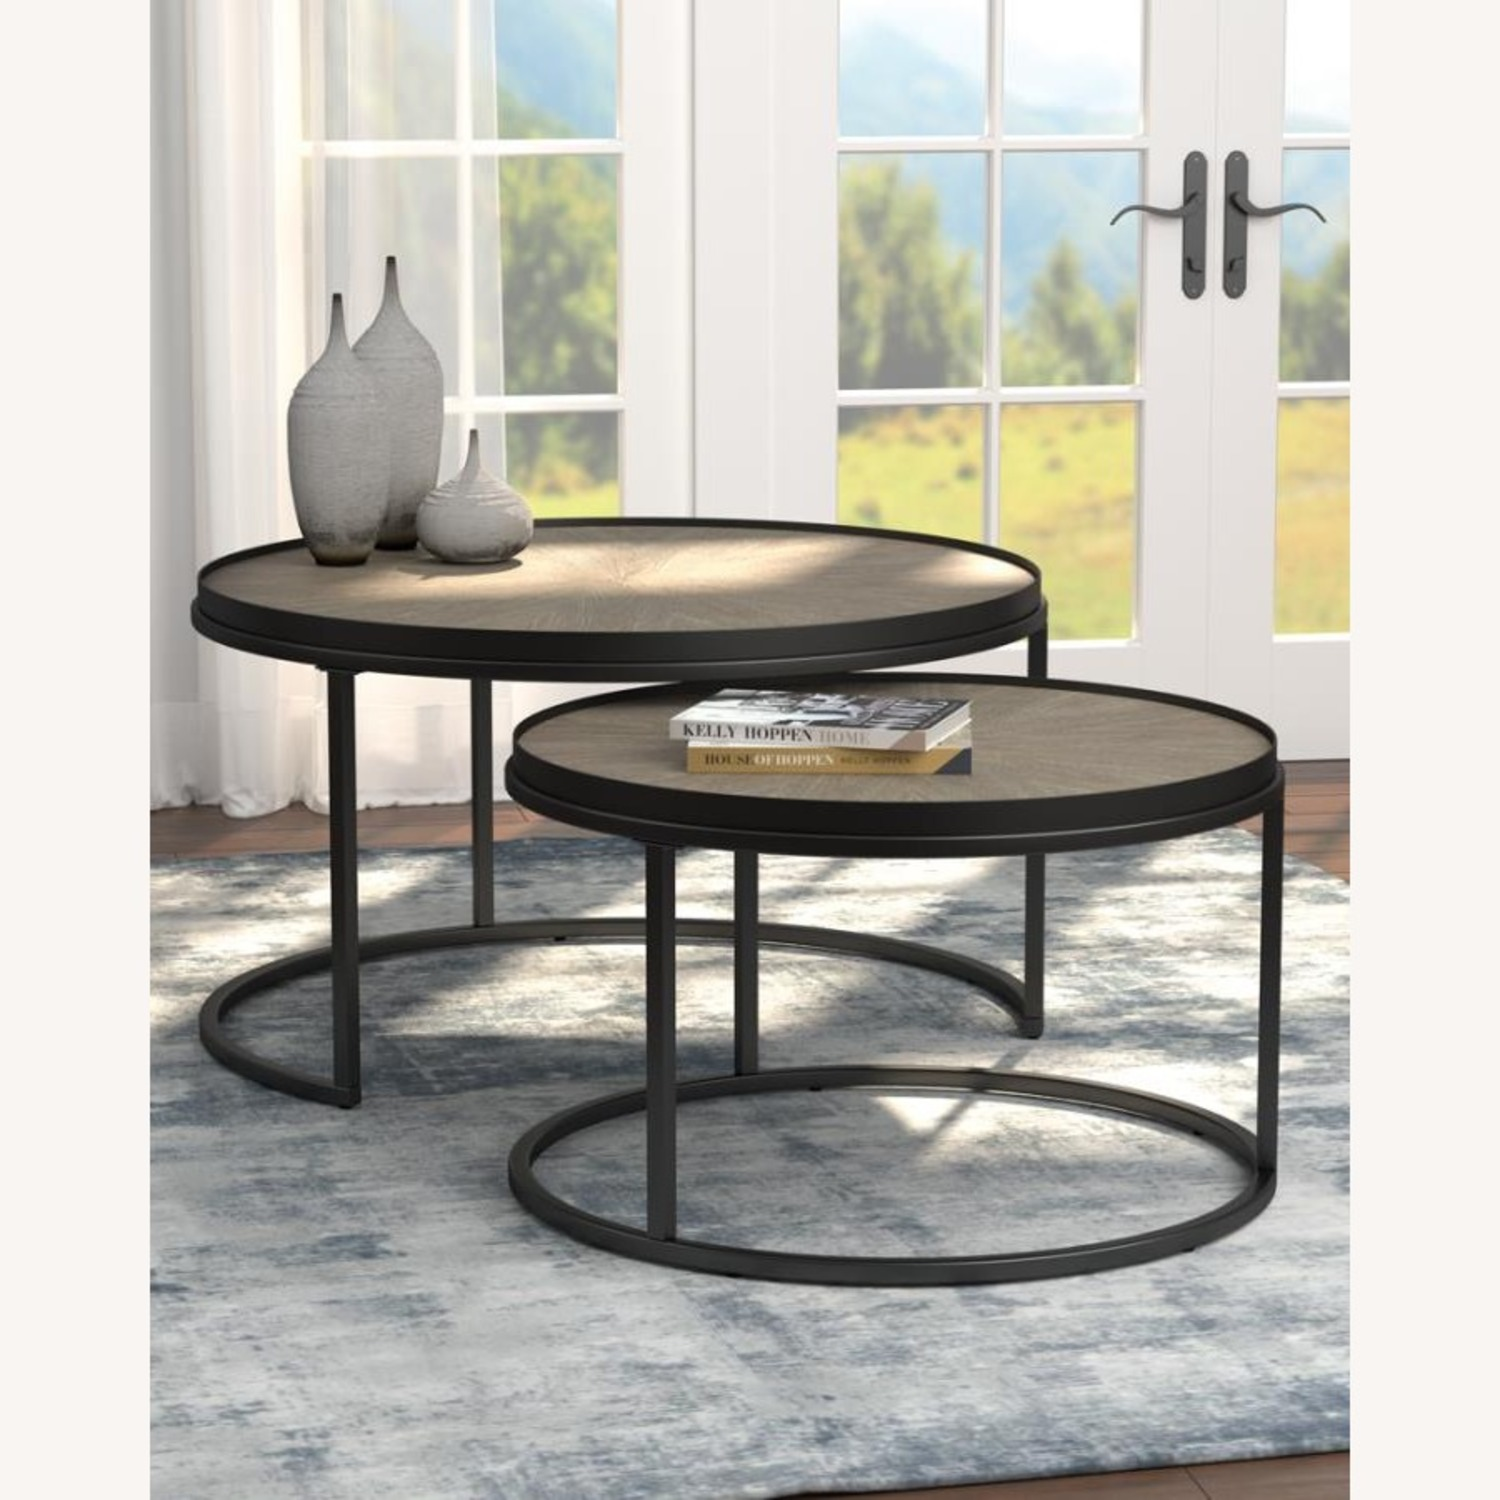 2-Piece Nesting Table In Weathered Elm Finish - image-3